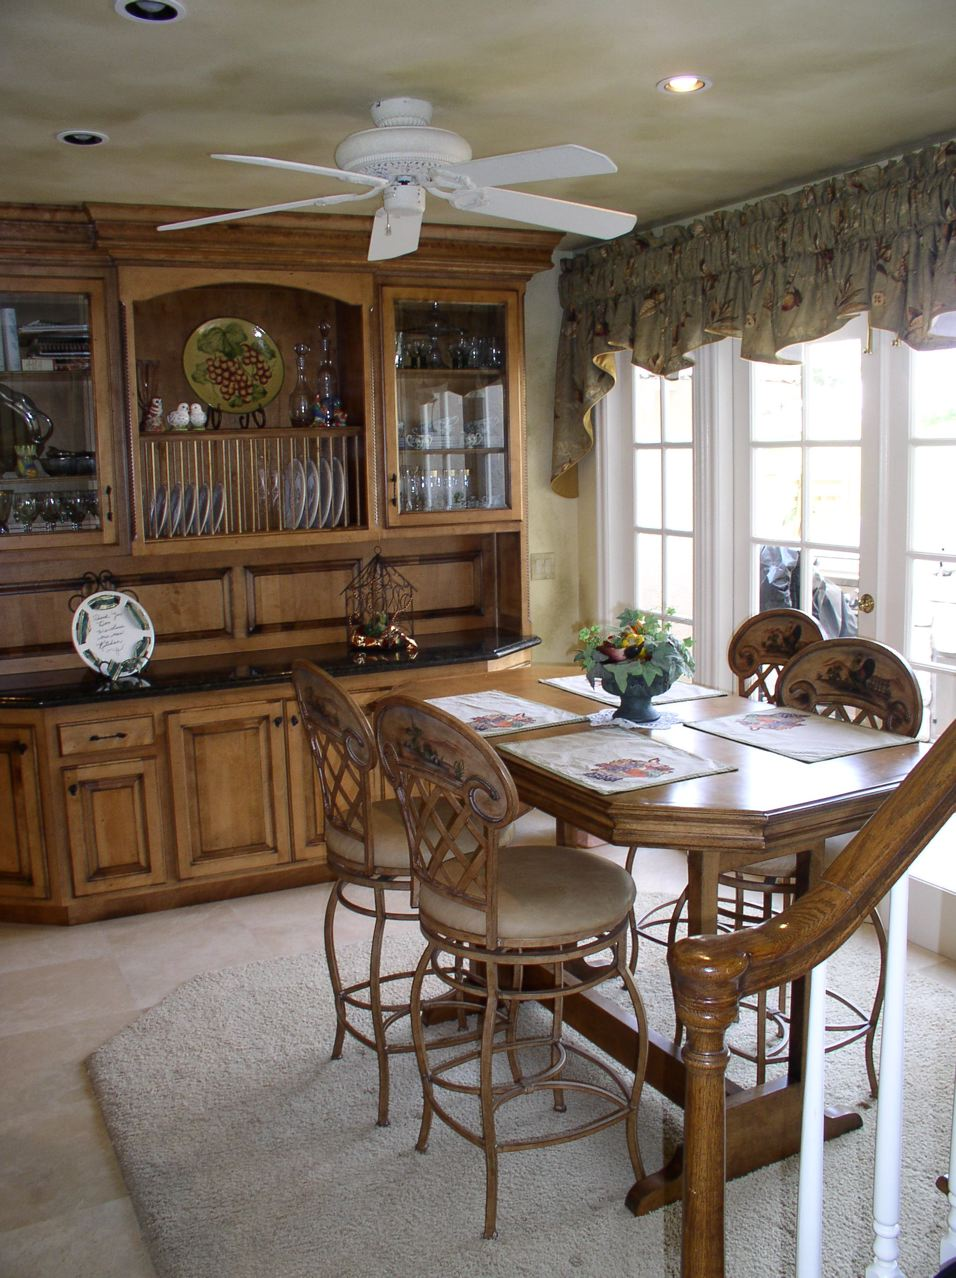 Sill Wood inks Kitchen dining room